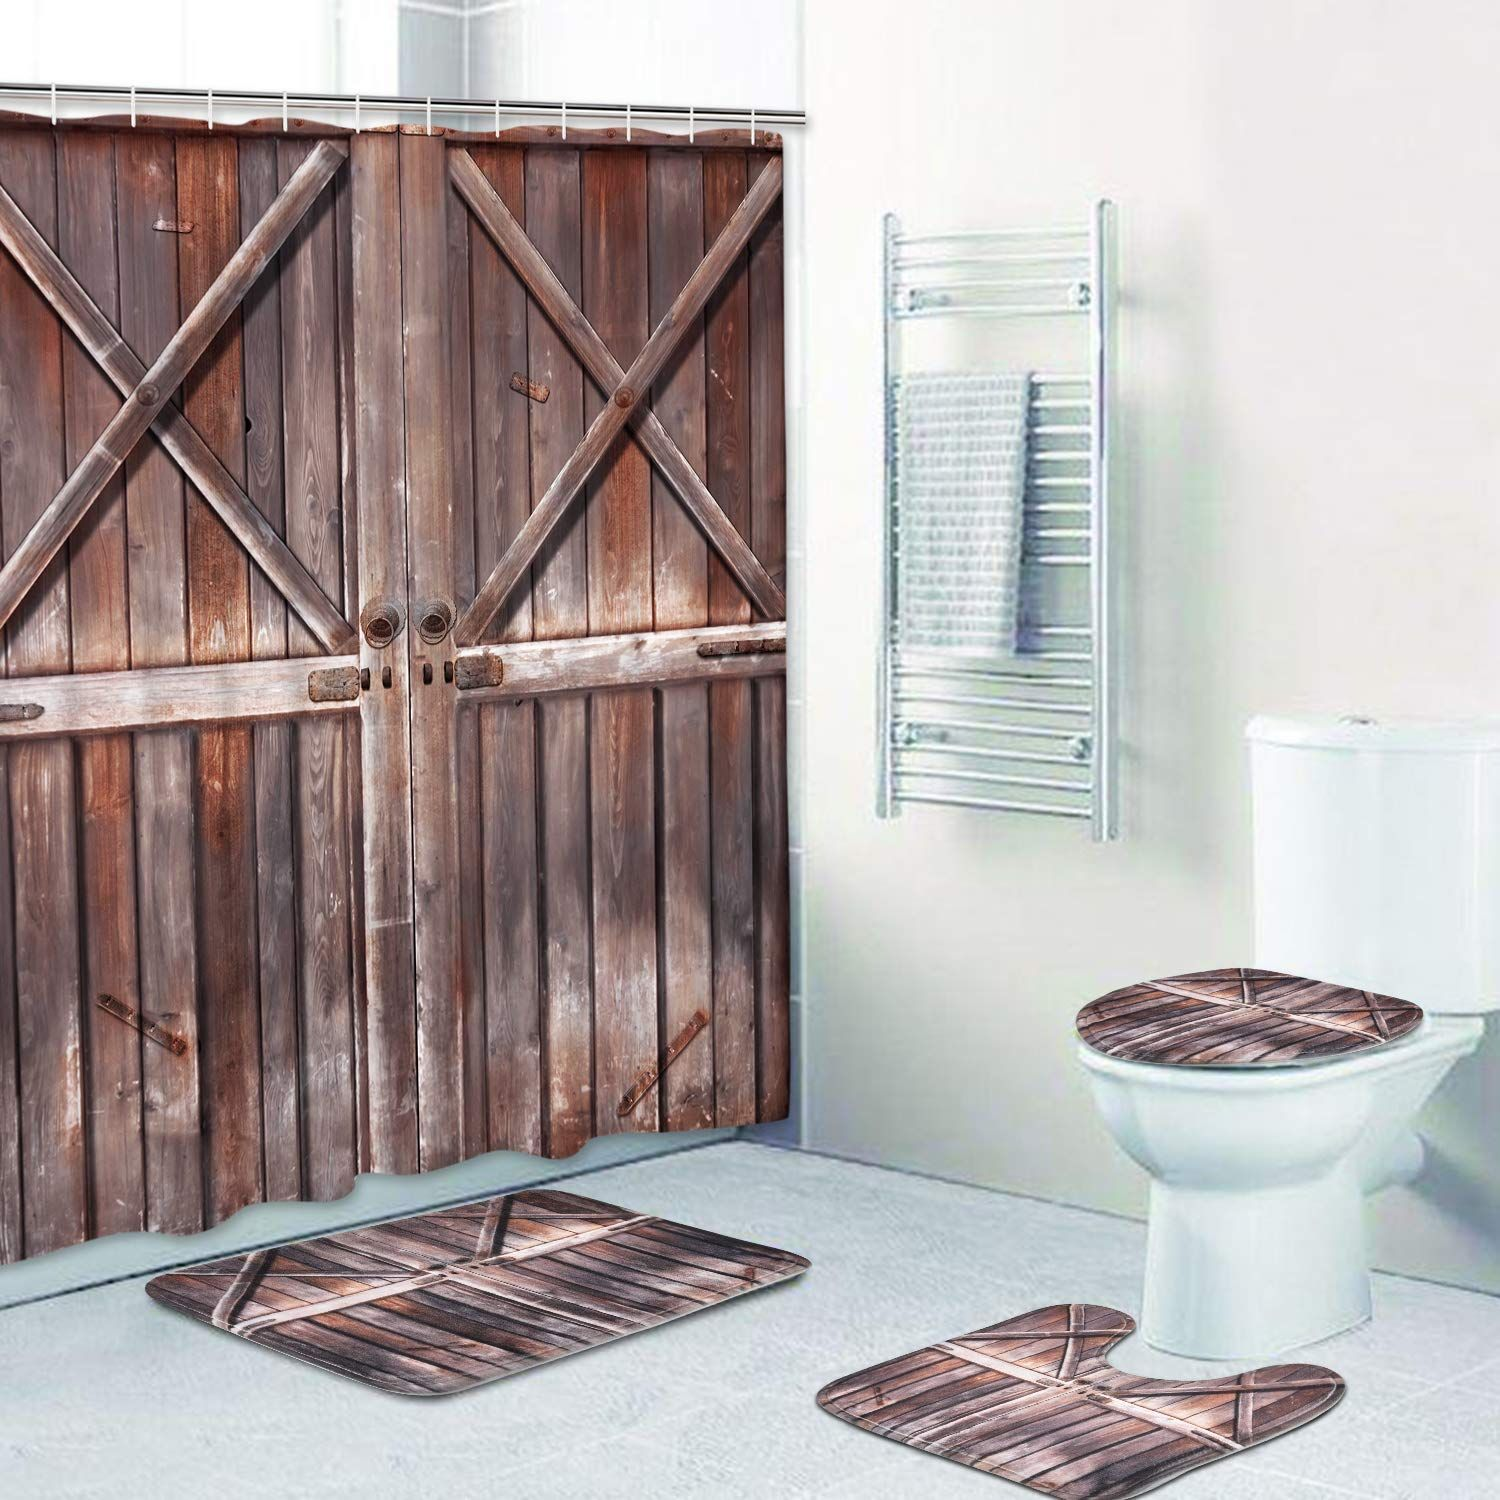 4 Piece Rustic Shower Curtain Sets With Non Slip Rugs Toilet Lid